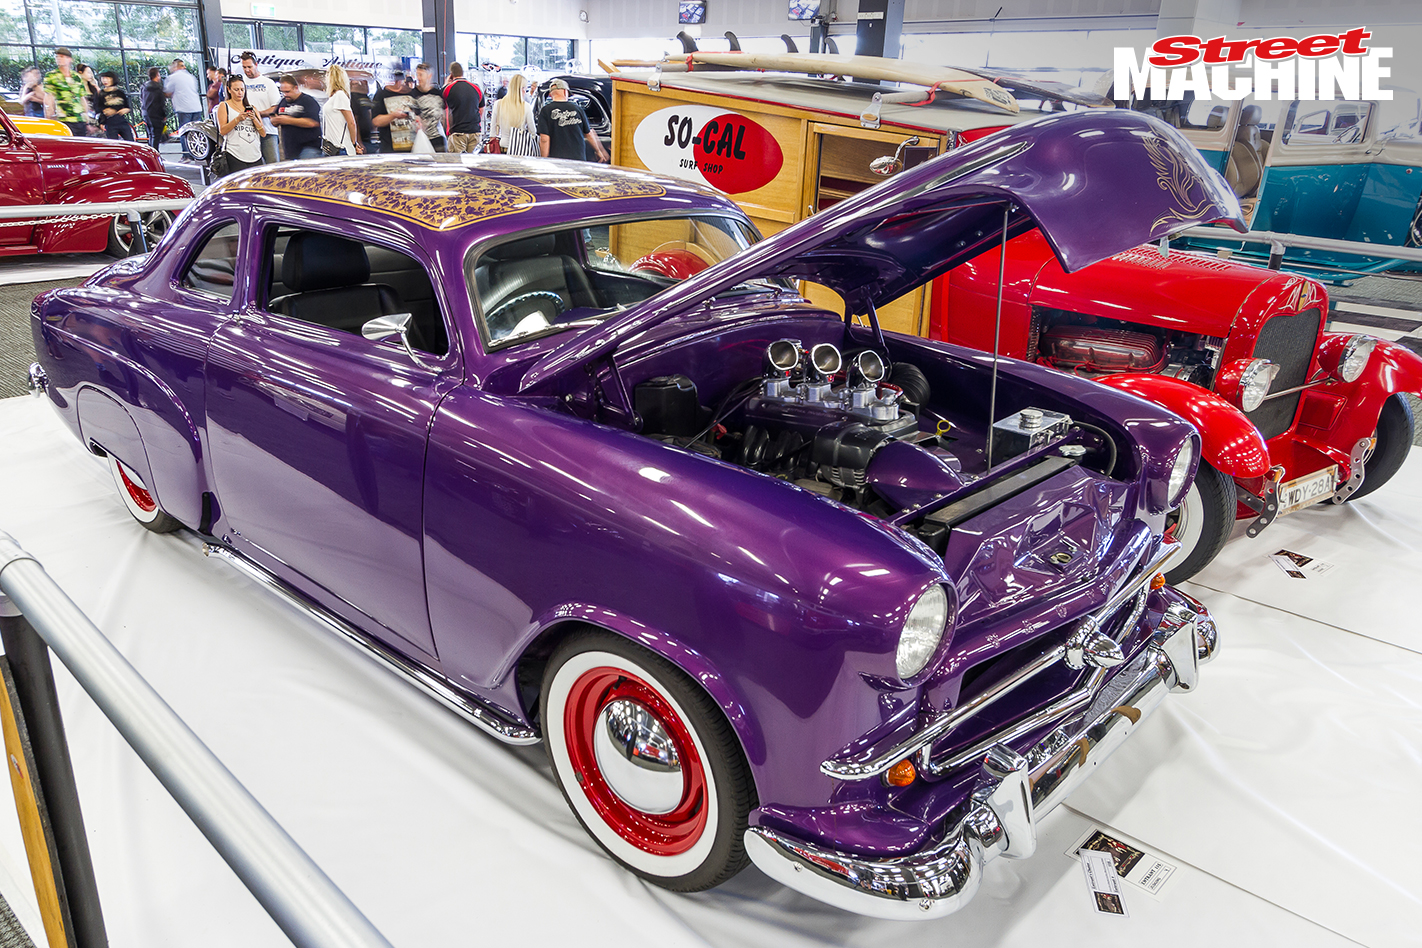 Rosehill Hot Rod Show 364